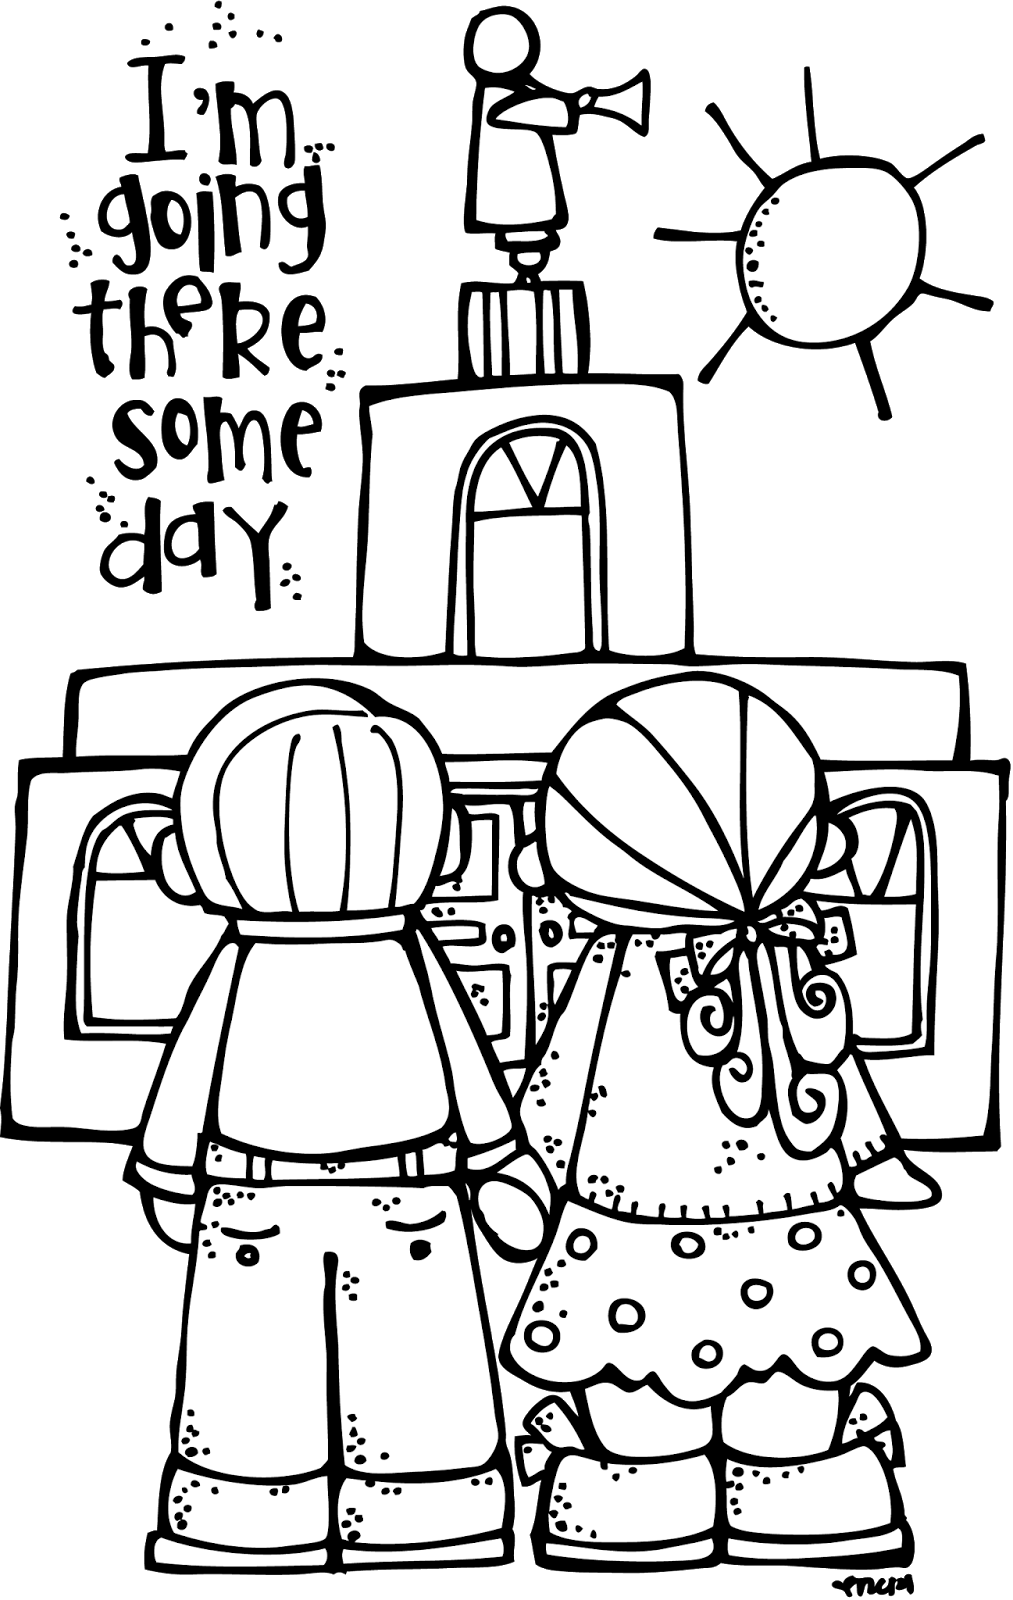 Melonheadz lds illustrating more. Wednesday clipart church activity